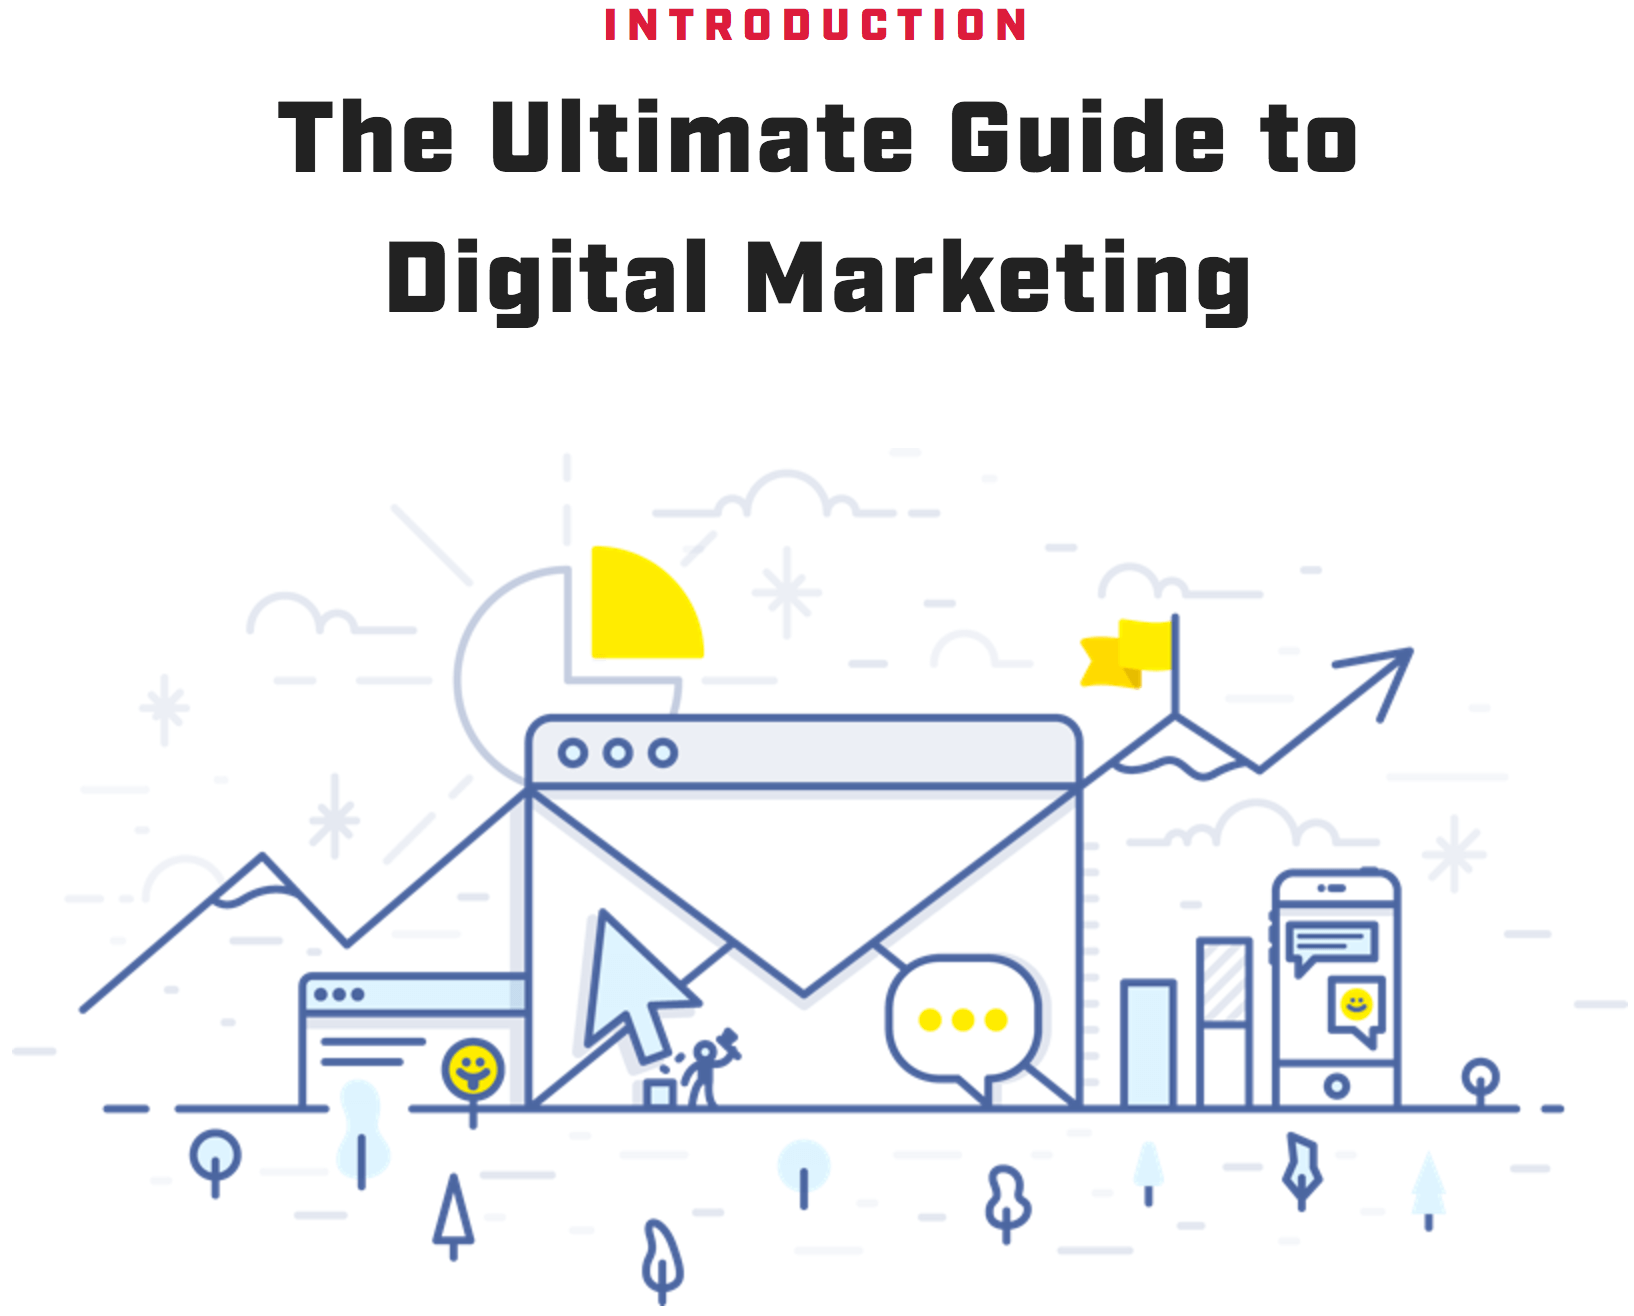 The Ultimate Guide to Digital Marketing - Ramit Sethi